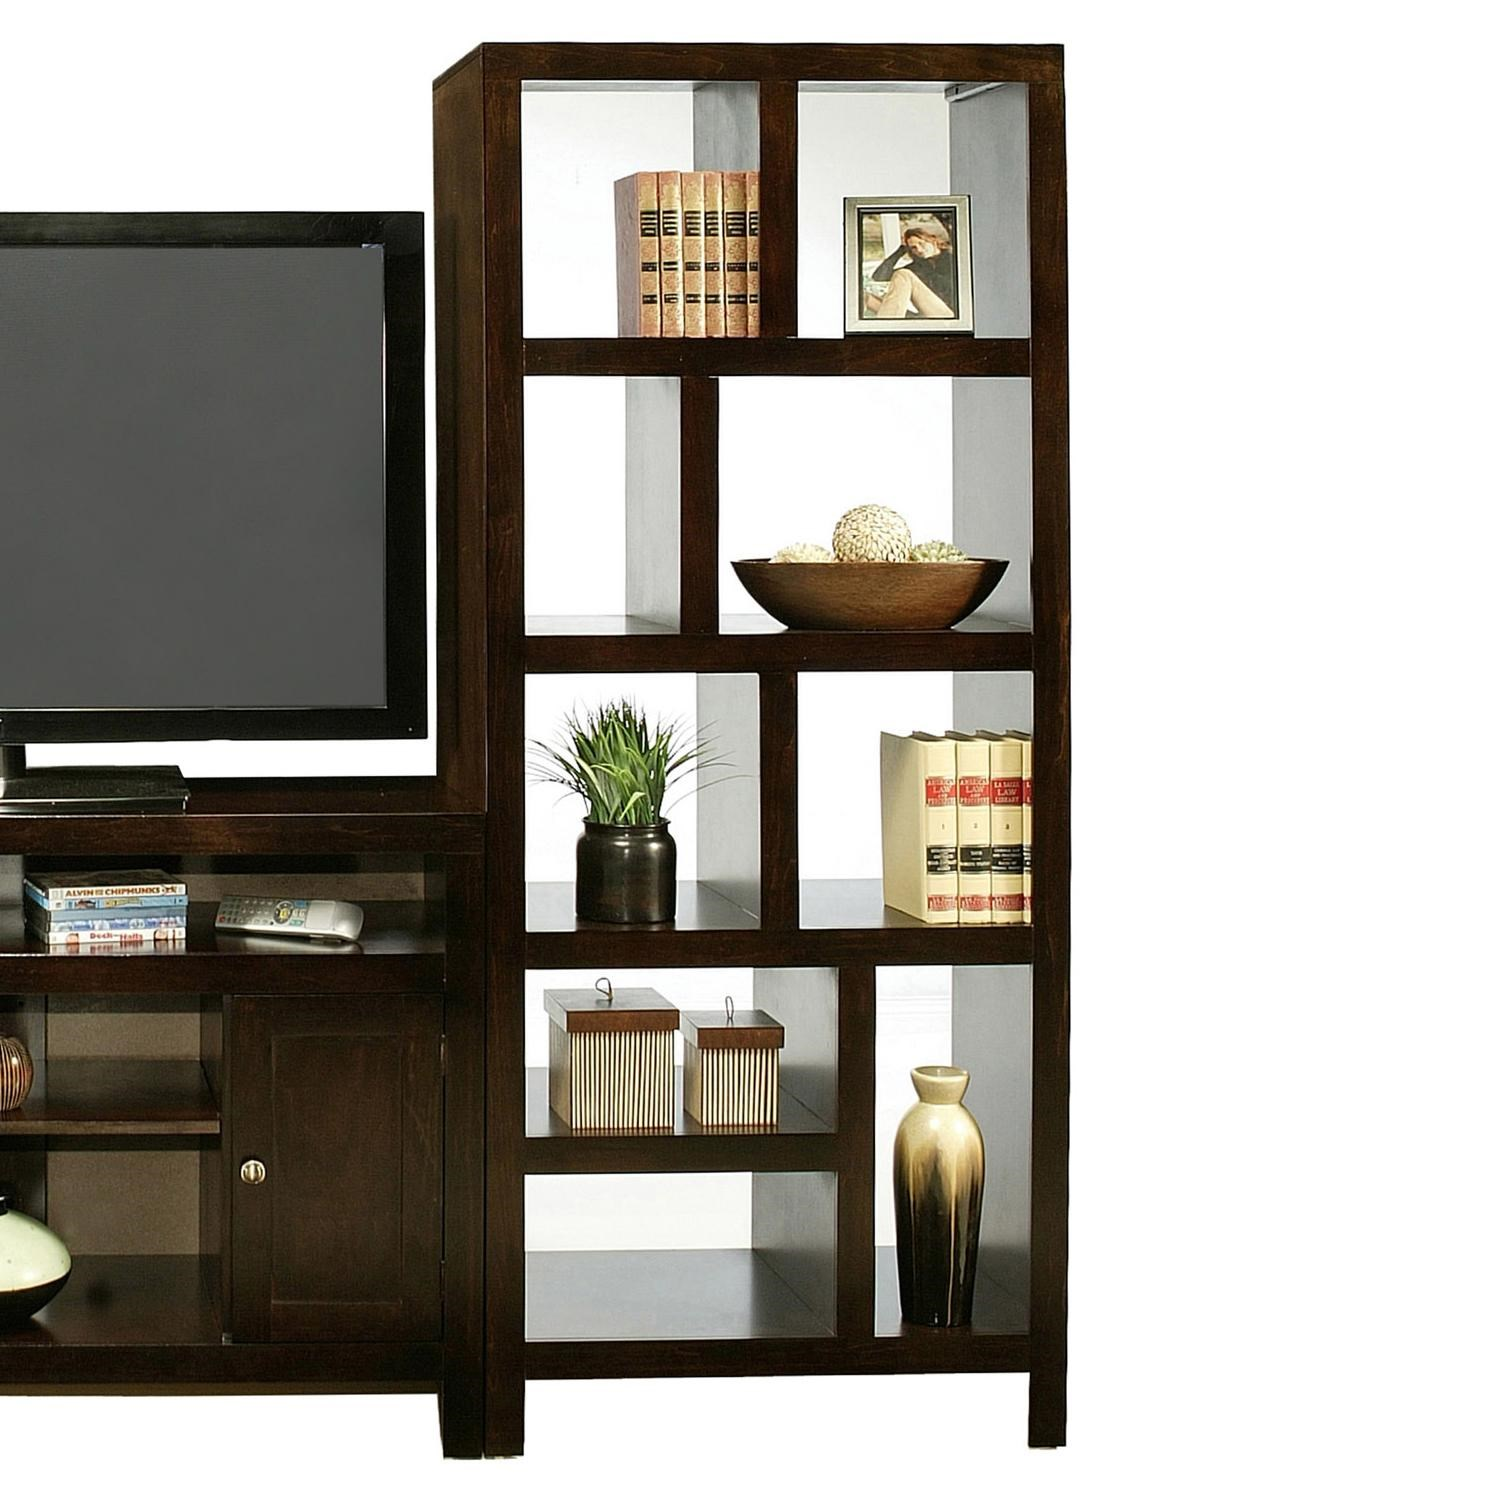 Del Mar Room Divider Tower Belfort Furniture Open Bookcase : del20mar20dmdme3072rdt pv bjpgscalebothampwidth500ampheight500ampfsharpen25ampdown from www.belfortfurniture.com size 500 x 500 jpeg 41kB